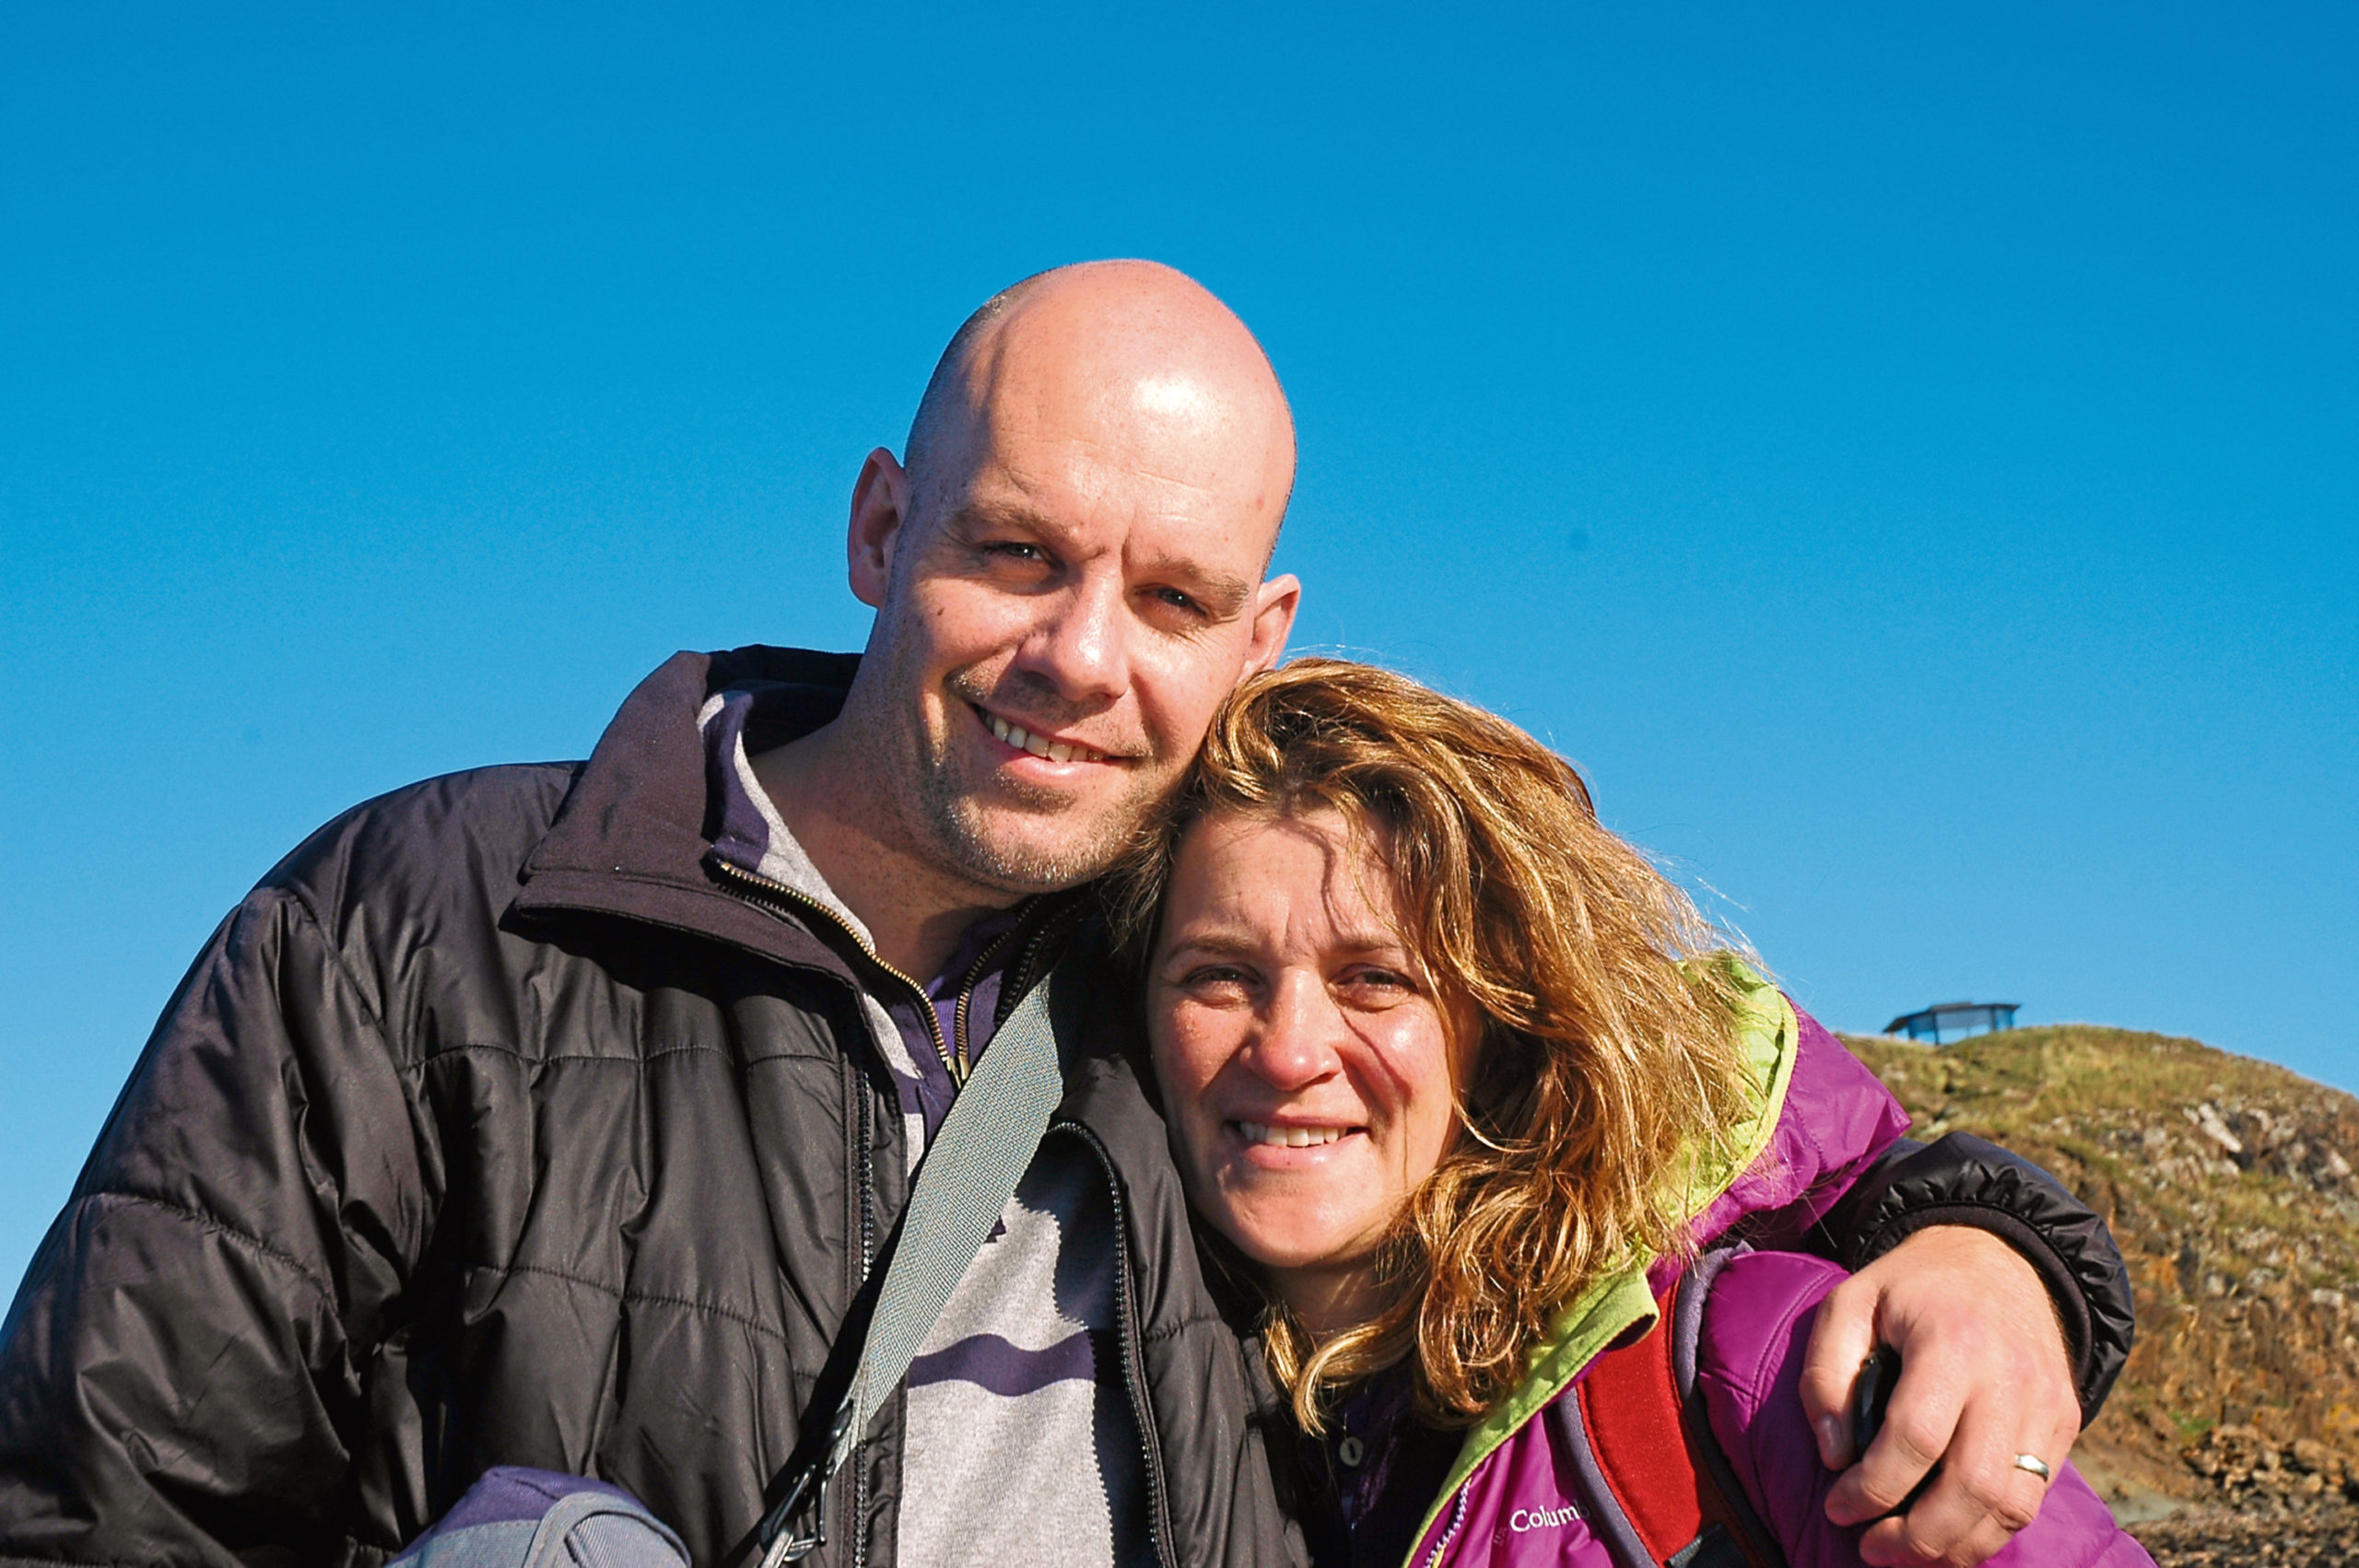 Richard and Louise Blanchfield have co-authored Eating My Way Back To Health